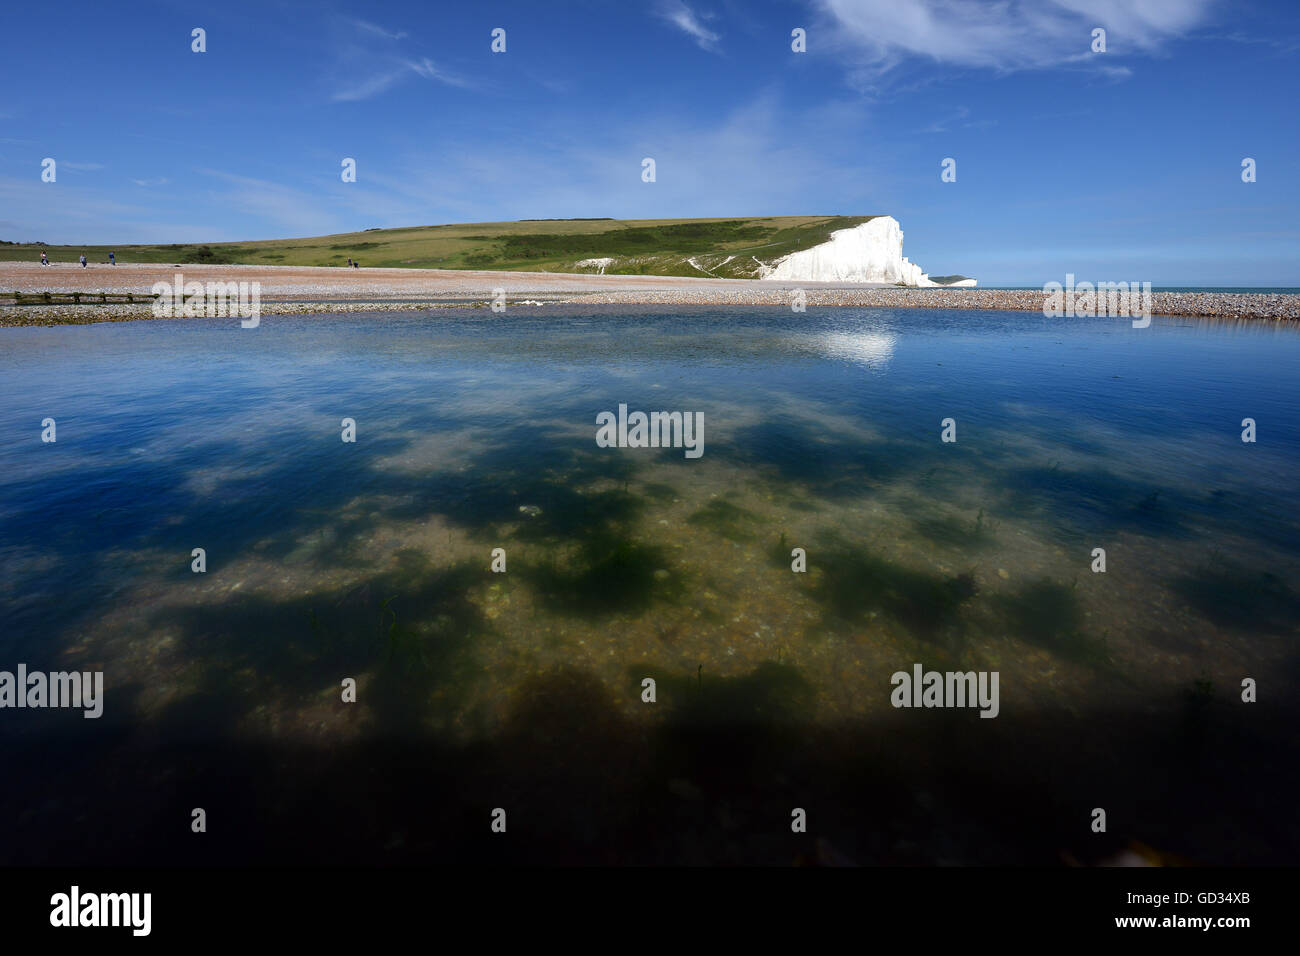 The iconic view of the English coast, Seven Sisters chalk cliffs, East Sussex - Stock Image